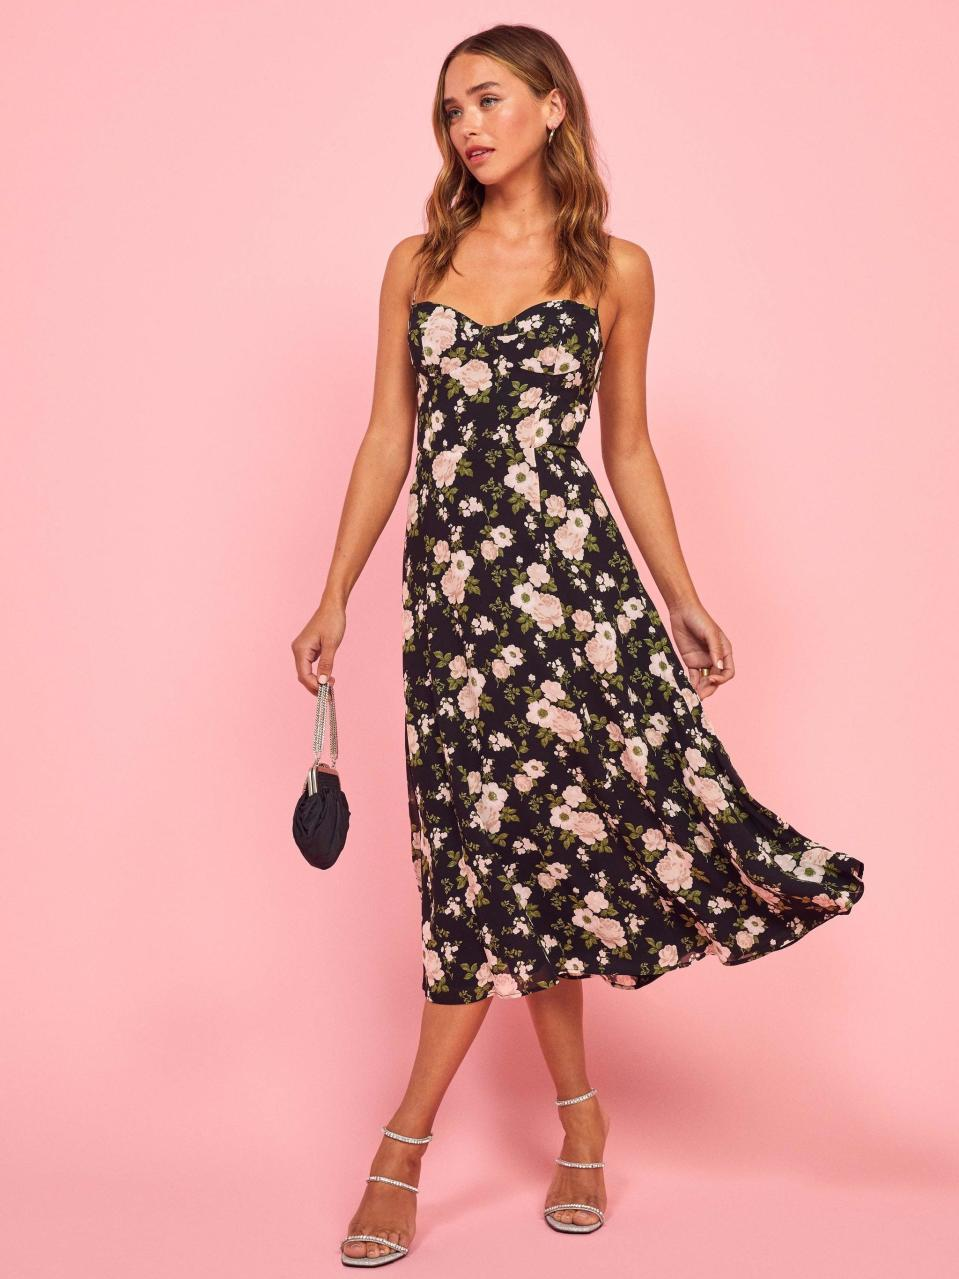 "<p><a href=""https://www.popsugar.com/buy/Reformation-Evangelista-Dress-552339?p_name=Reformation%20Evangelista%20Dress&retailer=thereformation.com&pid=552339&price=218&evar1=fab%3Aus&evar9=45873724&evar98=https%3A%2F%2Fwww.popsugar.com%2Ffashion%2Fphoto-gallery%2F45873724%2Fimage%2F47262117%2FReformation-Evangelista-Dress&list1=shopping%2Cdresses%2Cspring%2Cflorals%2Cspring%20fashion&prop13=mobile&pdata=1"" class=""link rapid-noclick-resp"" rel=""nofollow noopener"" target=""_blank"" data-ylk=""slk:Reformation Evangelista Dress"">Reformation Evangelista Dress</a> ($218)</p>"